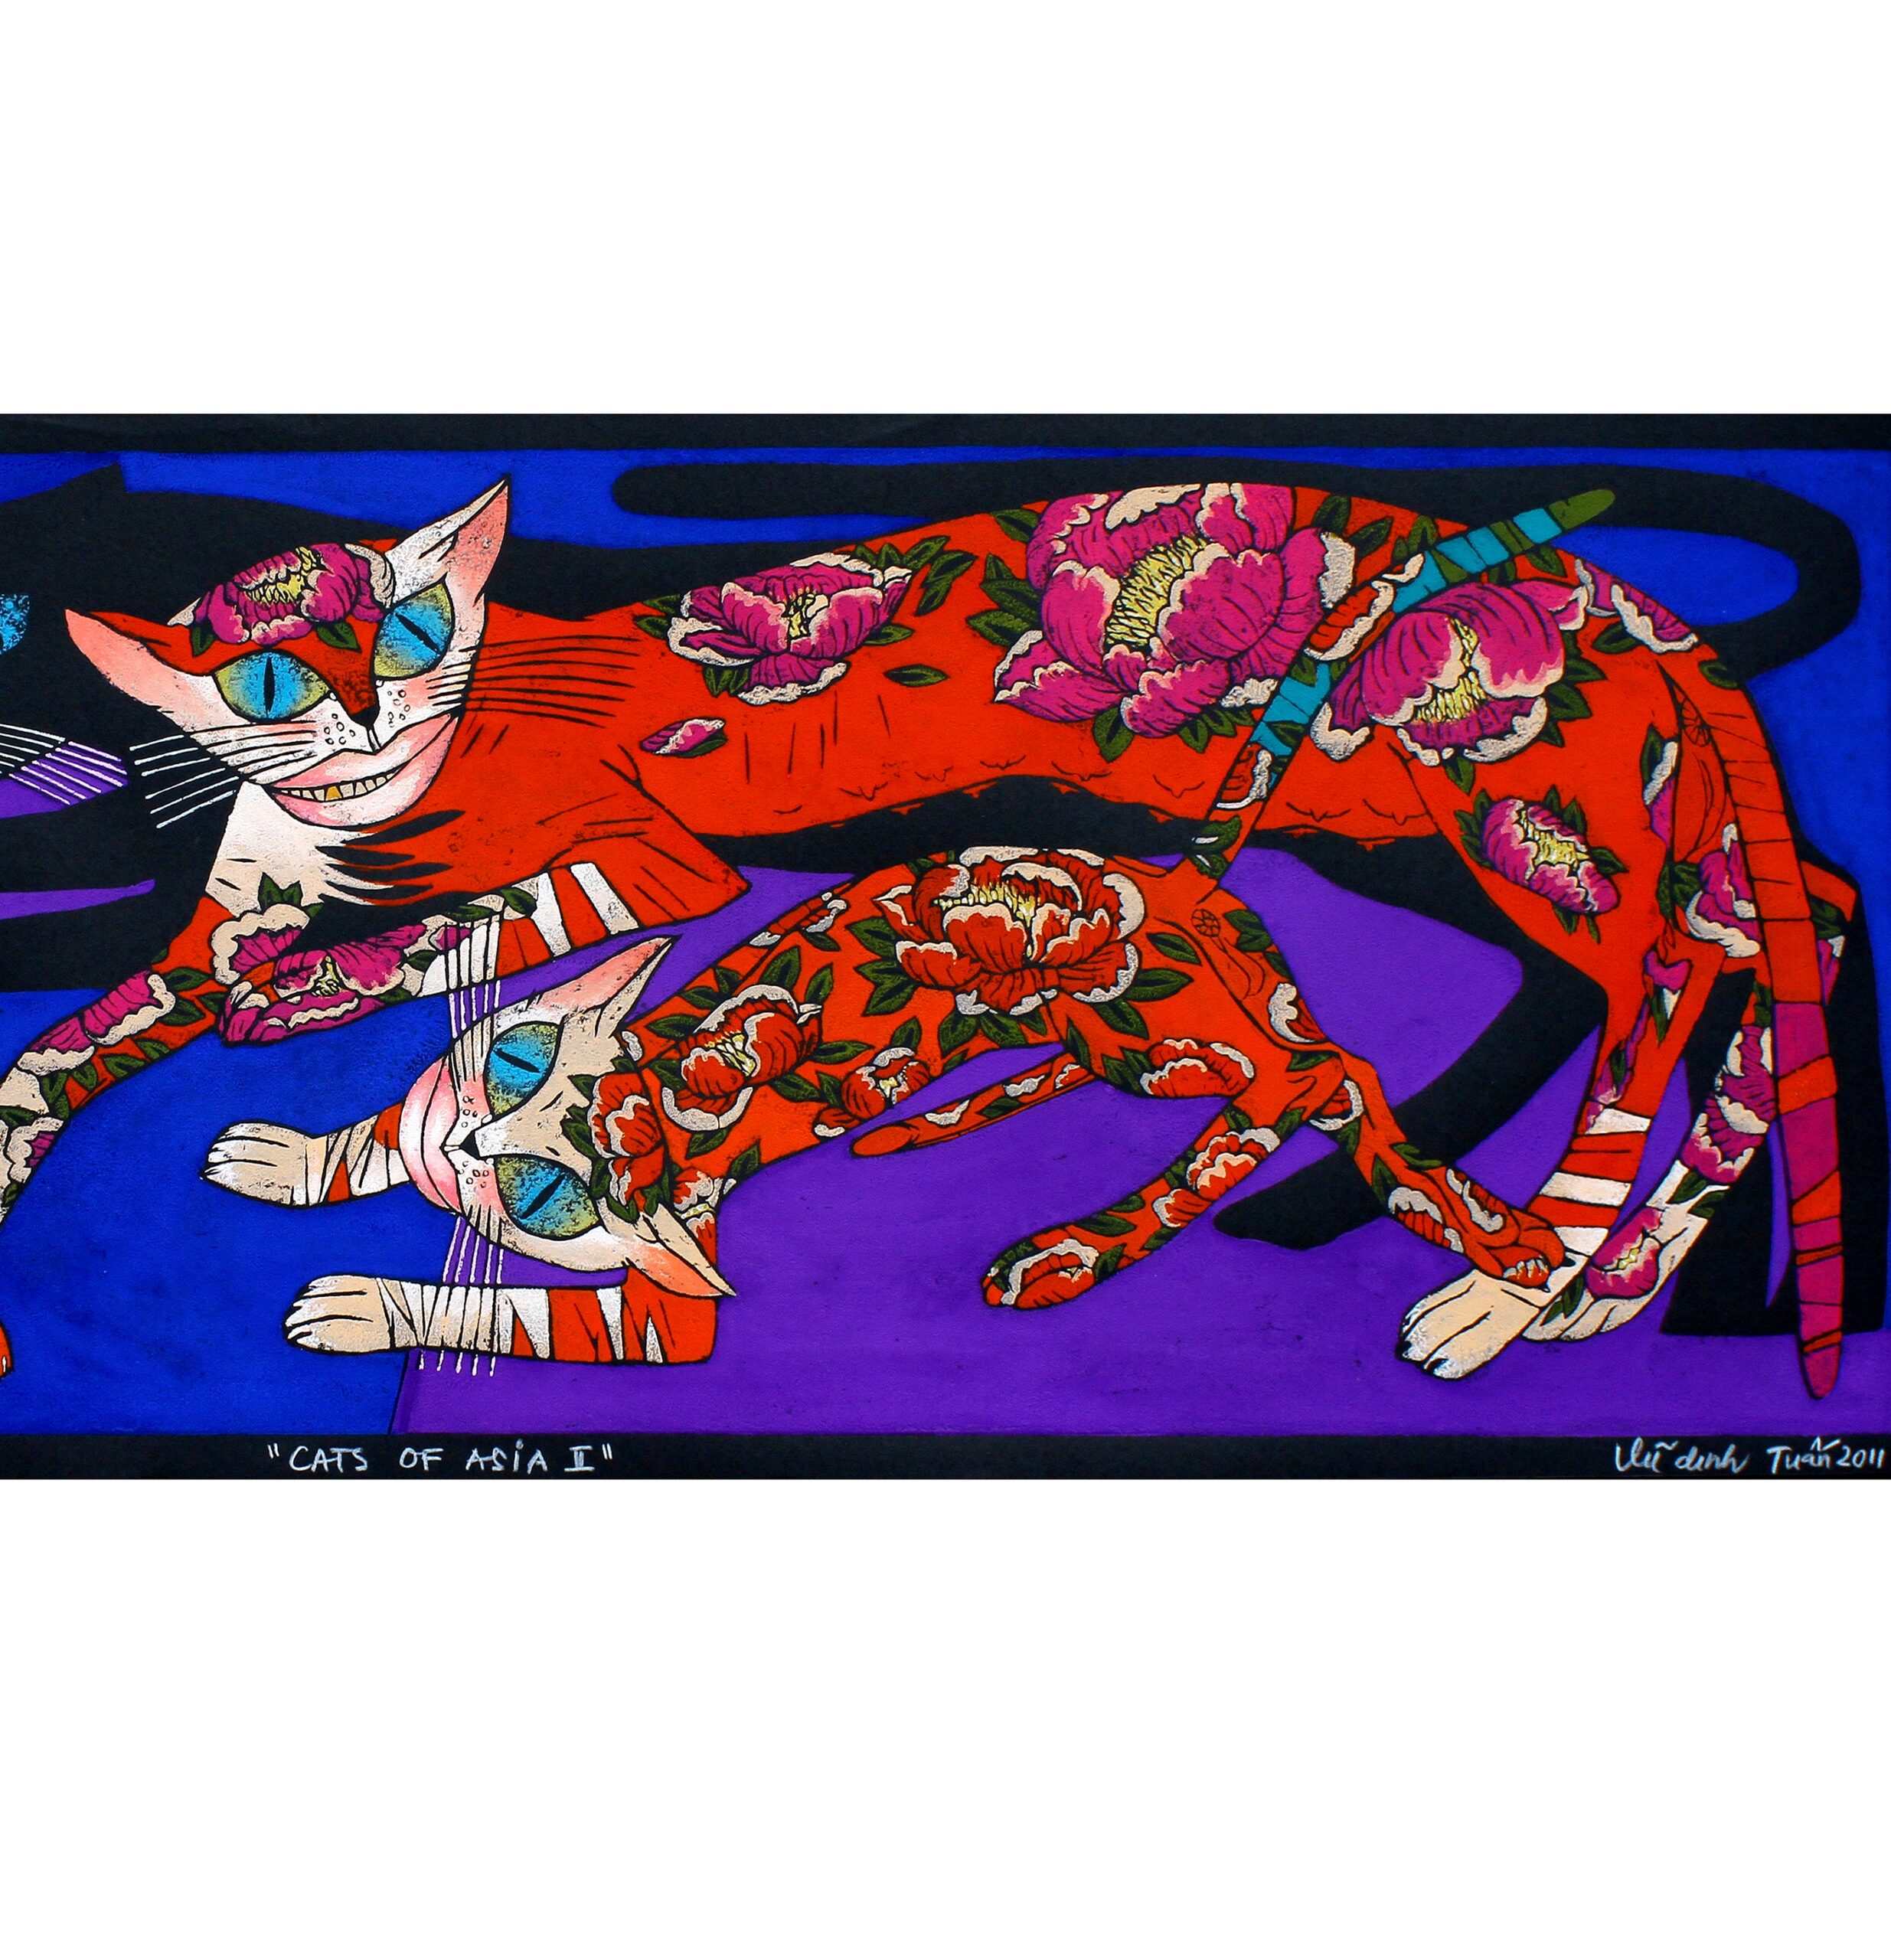 Cats of Asia by Vu Dinh Tuan, limited edition woodblock print, 2011, 40 x 110 cm